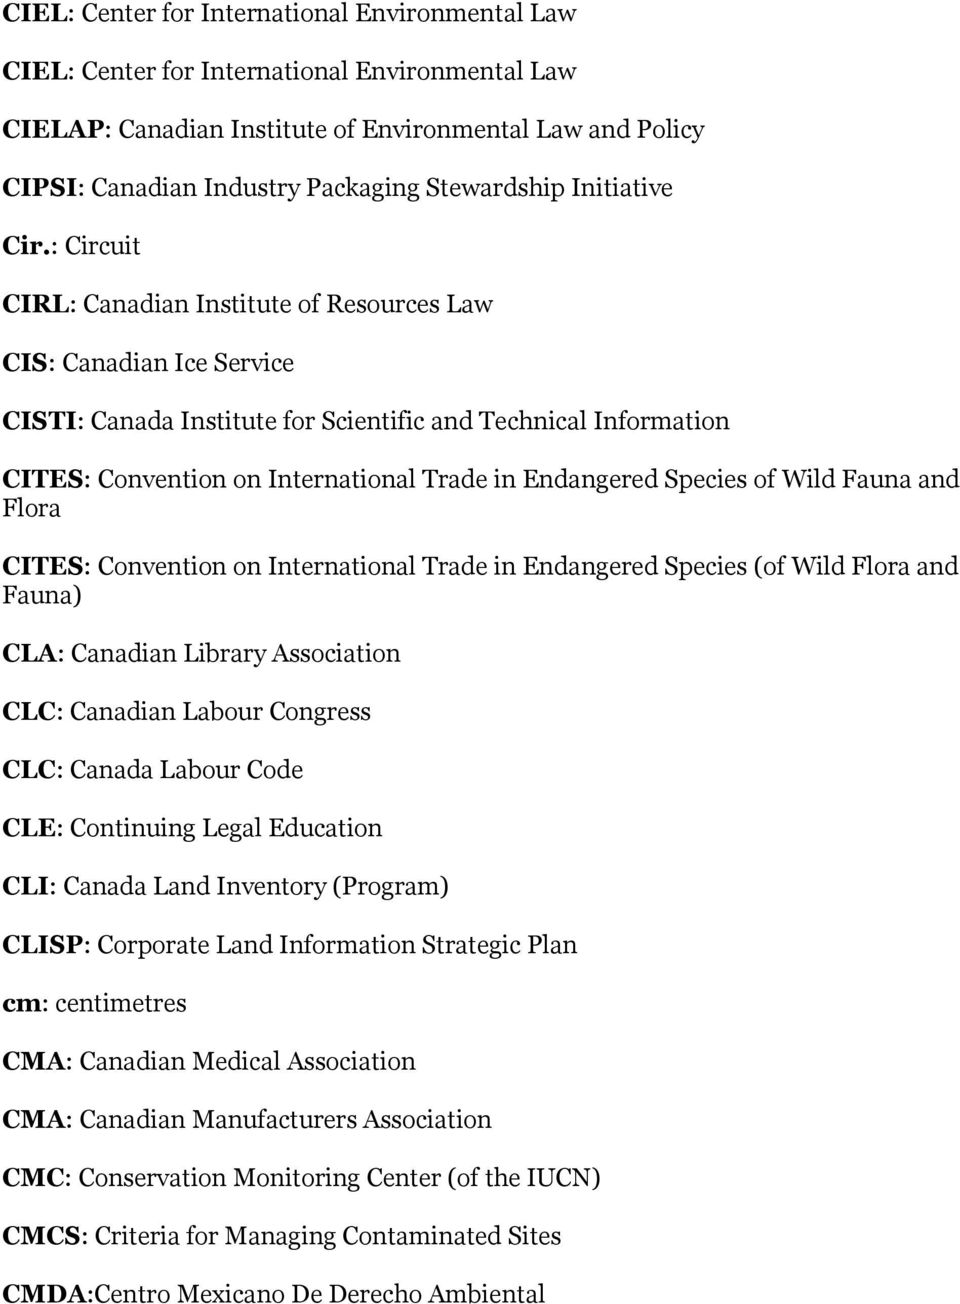 : Circuit CIRL: Canadian Institute of Resources Law CIS: Canadian Ice Service CISTI: Canada Institute for Scientific and Technical Information CITES: Convention on International Trade in Endangered